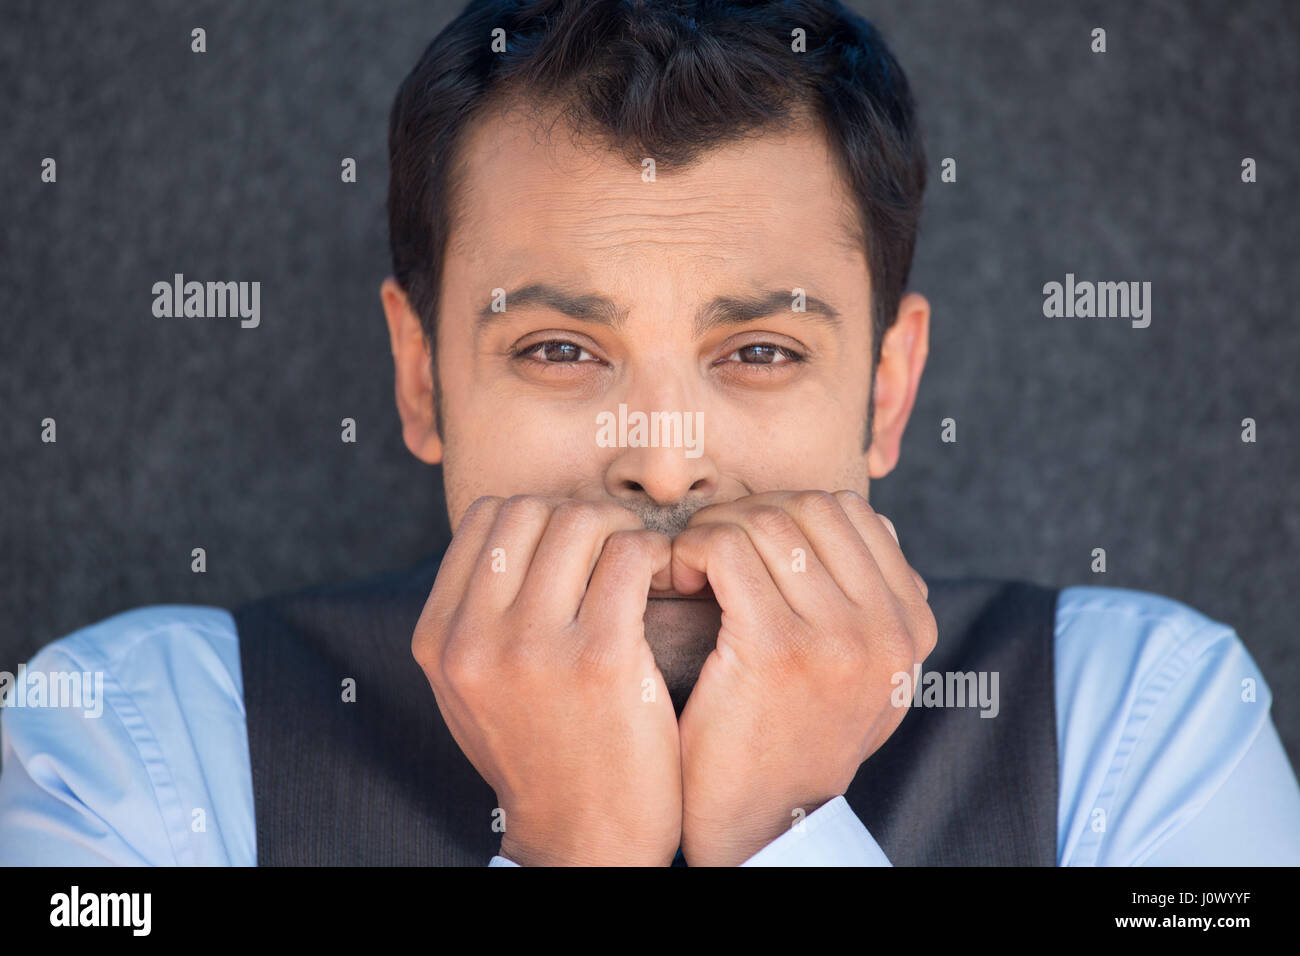 Closeup portrait, young unhappy man, biting his nails looking at you with craving for something, anxious, worried - Stock Image